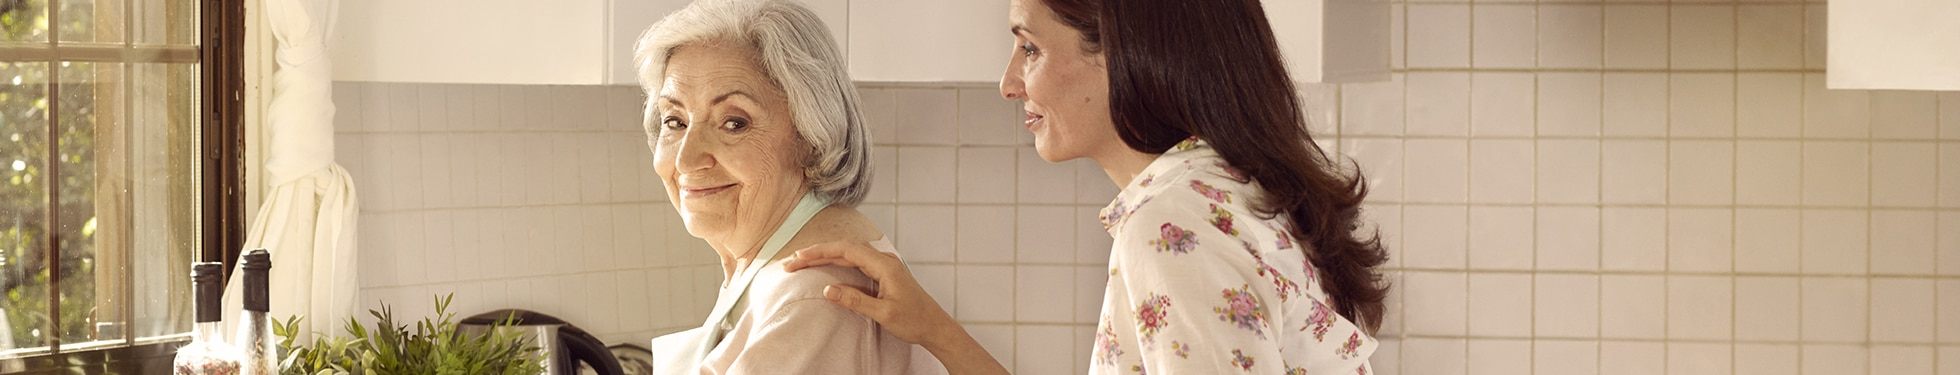 1960x375_Older_woman_and_younger_woman_cooking_AC_4_1.jpg